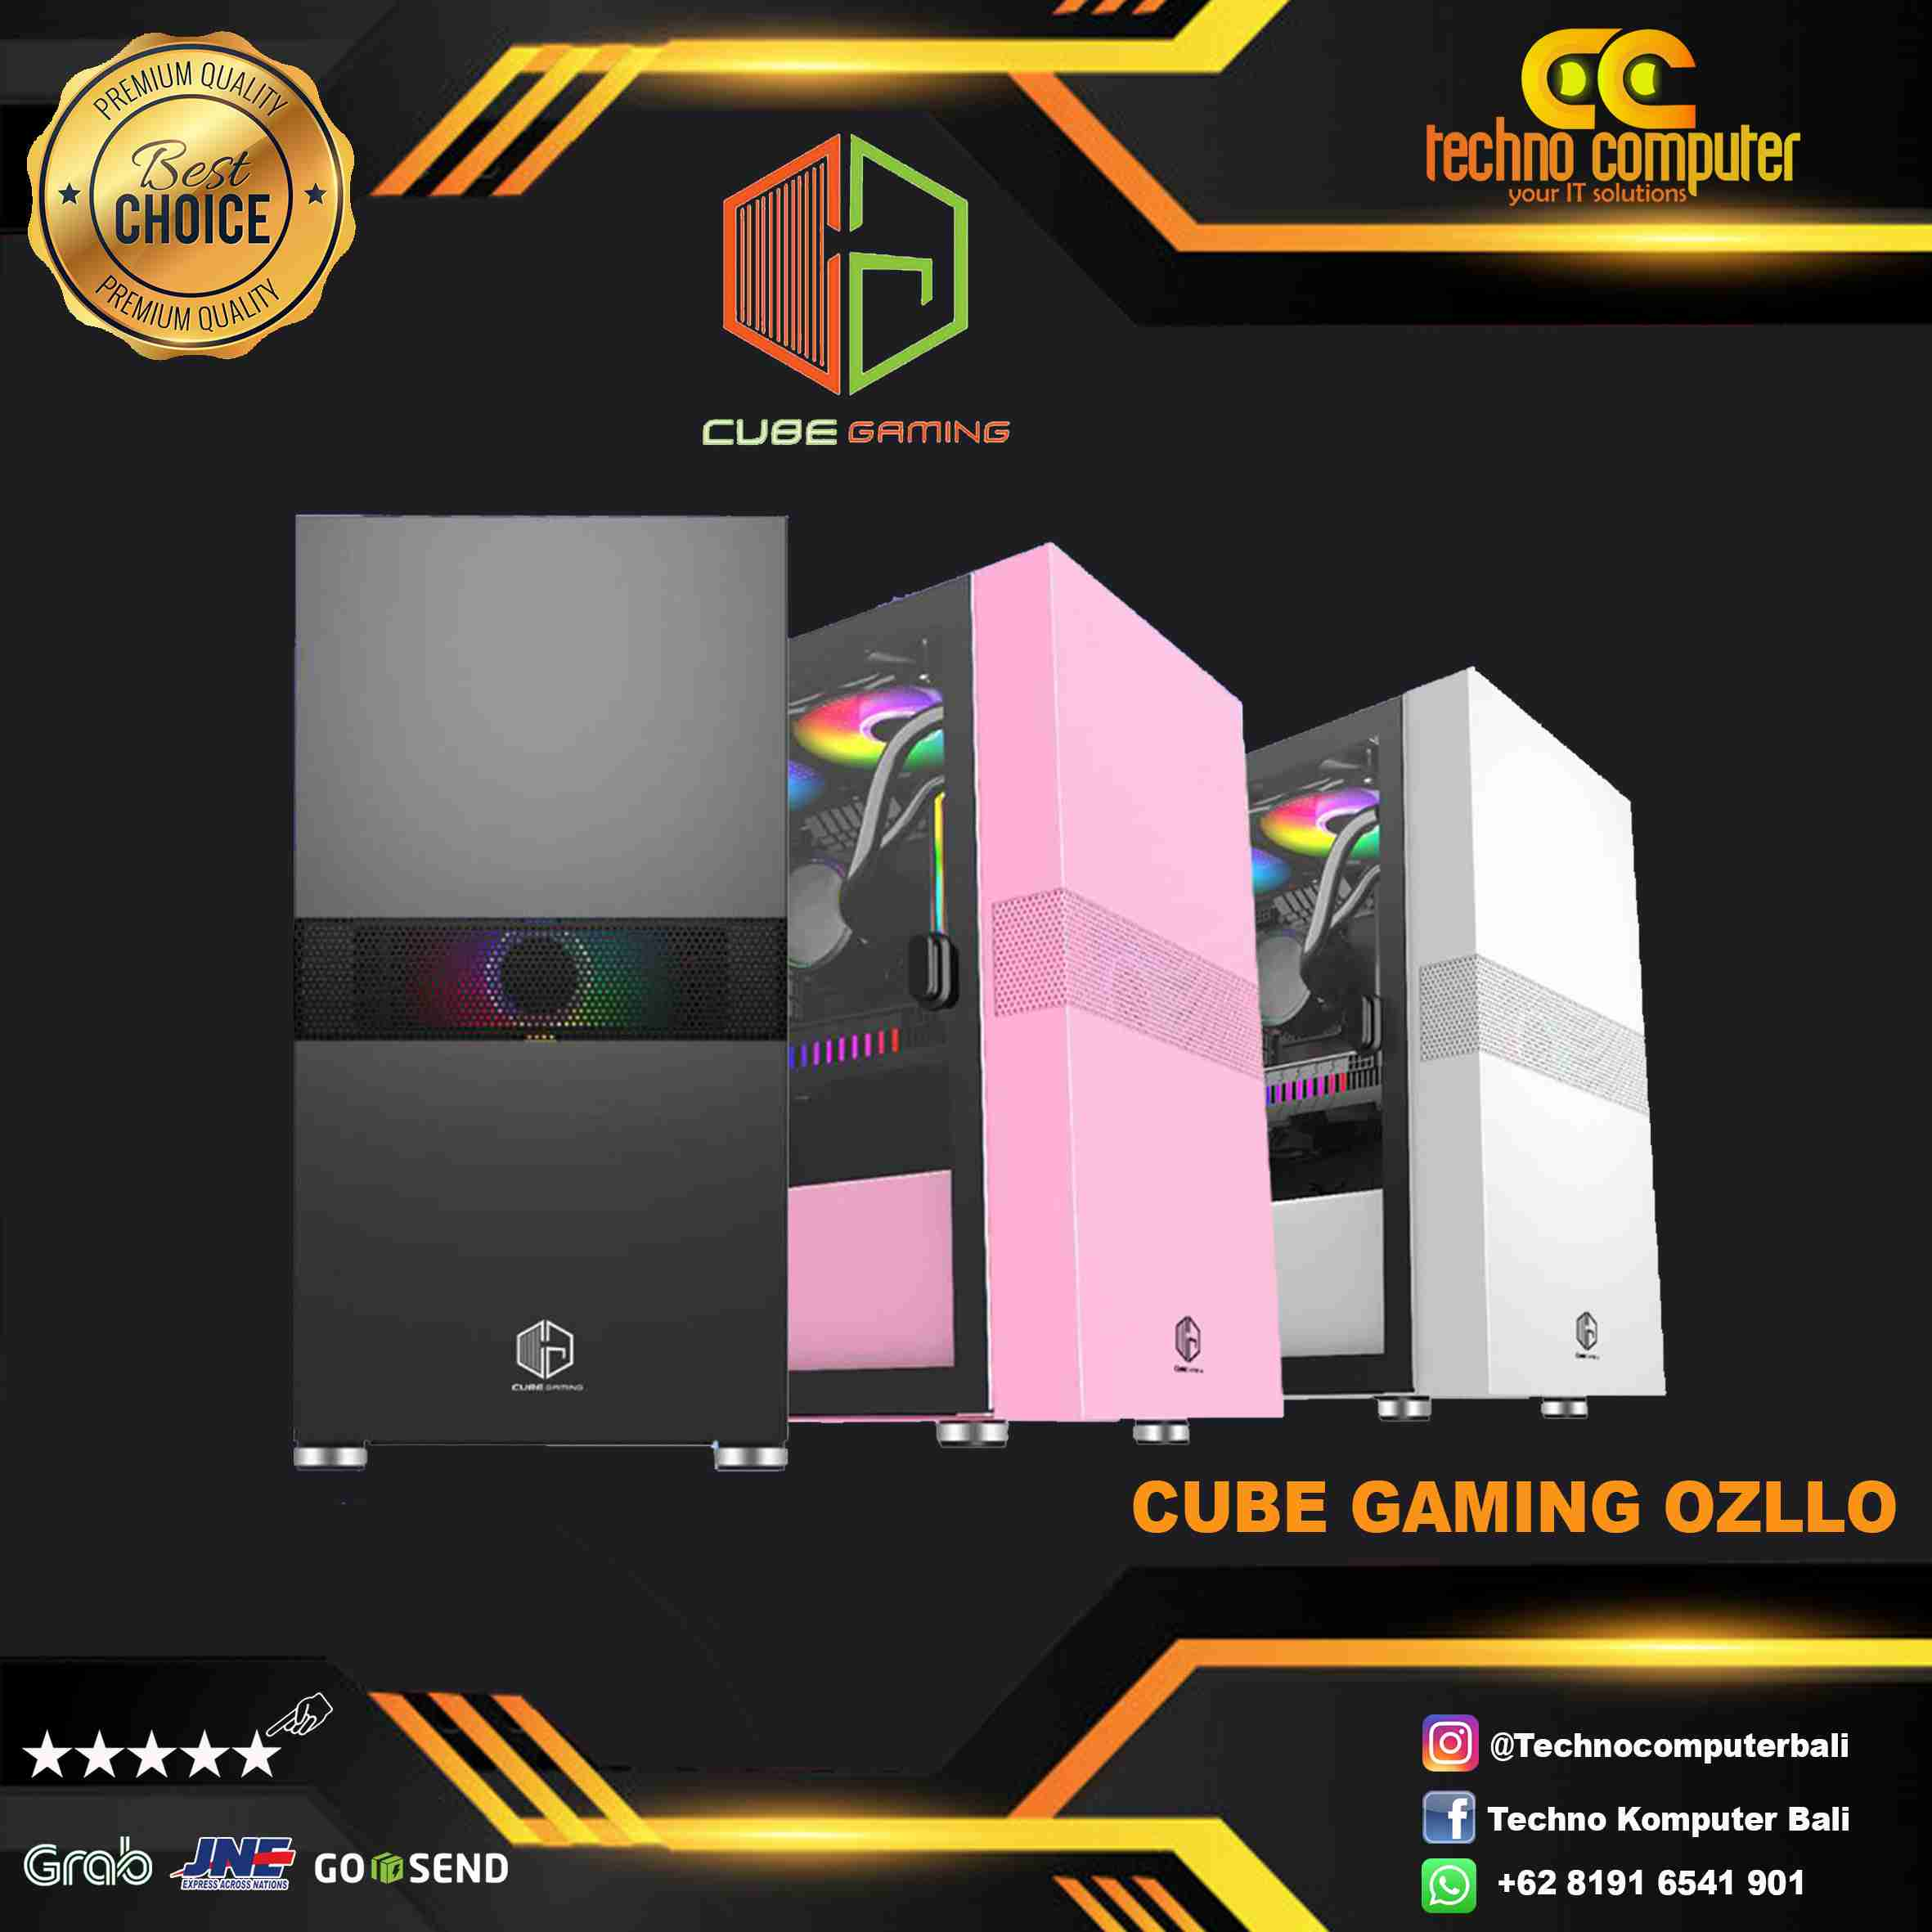 CASING CUBE GAMING OZLLO WHITE - mATX - LEFT SIDE MAGNETIC GLASS DOOR - Free 1pcs 120mm RGB Fan